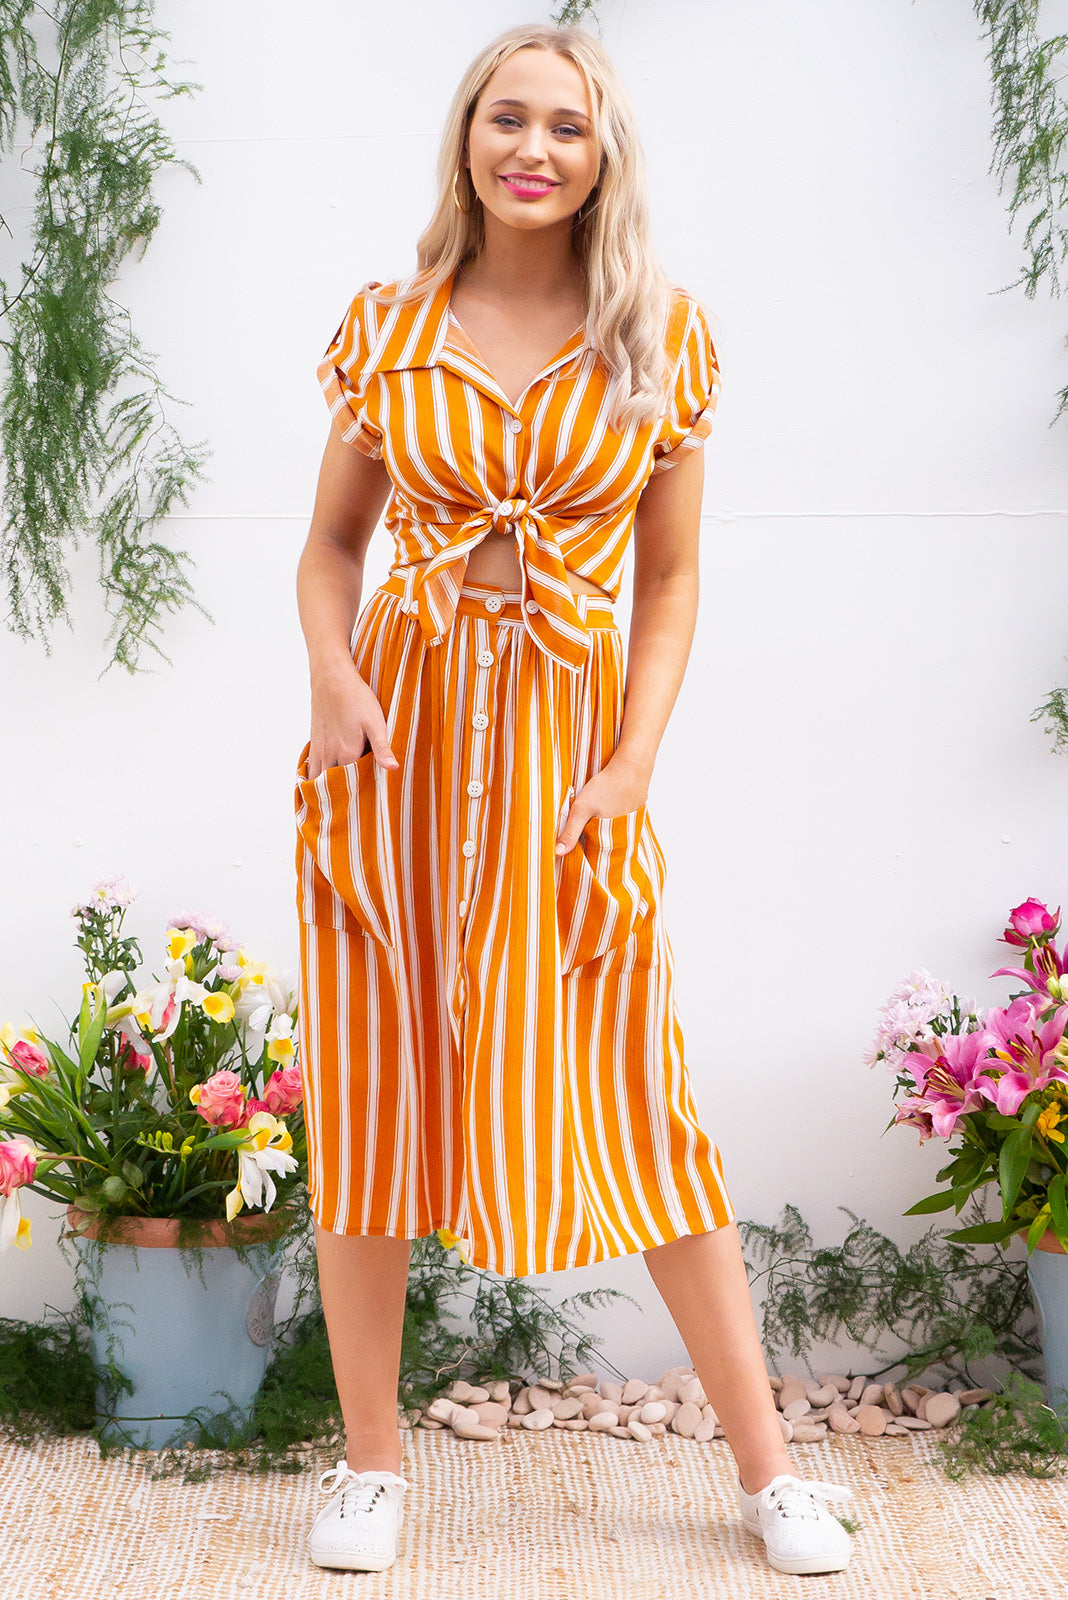 Luisa Burnt Orange Stripe button front crinkle textured 100% rayon in a burnt orange retro inspired stripe print